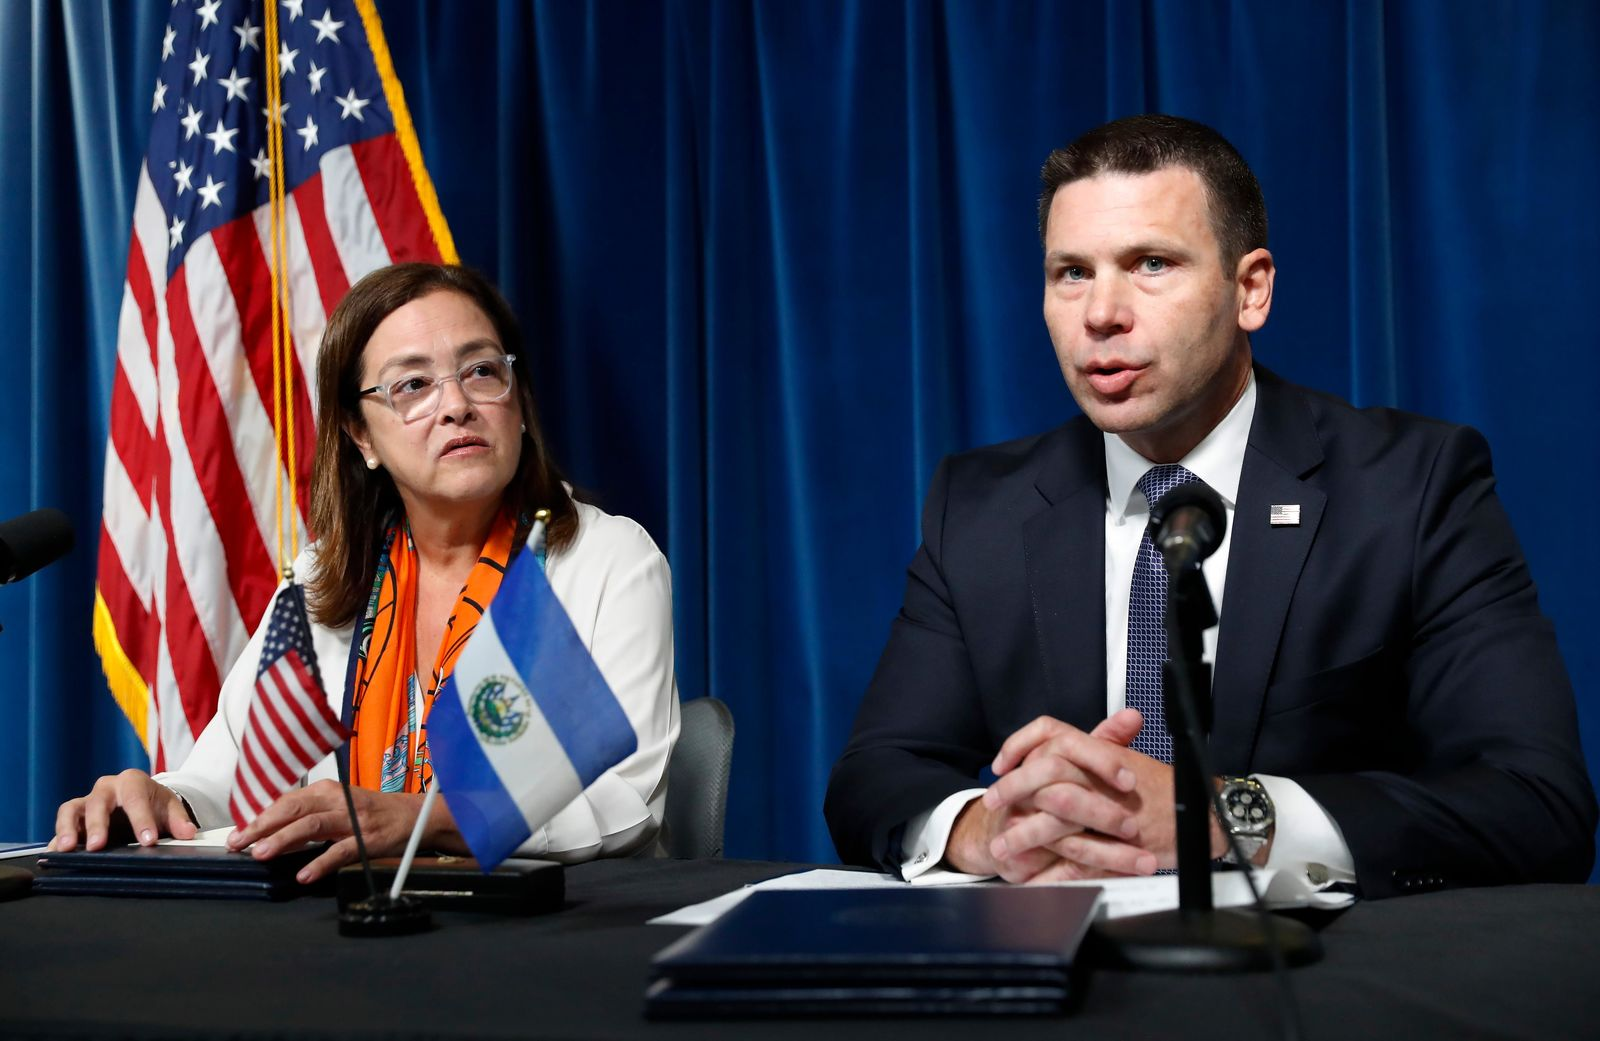 Acting Secretary of Homeland Security Kevin McAleenan speak during a news conference with El Salvador Foreign Affairs Minister Alexandra Hill at the U.S. Customs and Border Protection headquarters in Washington, Friday, Sept. 20, 2019.  (AP Photo/Pablo Martinez Monsivais)